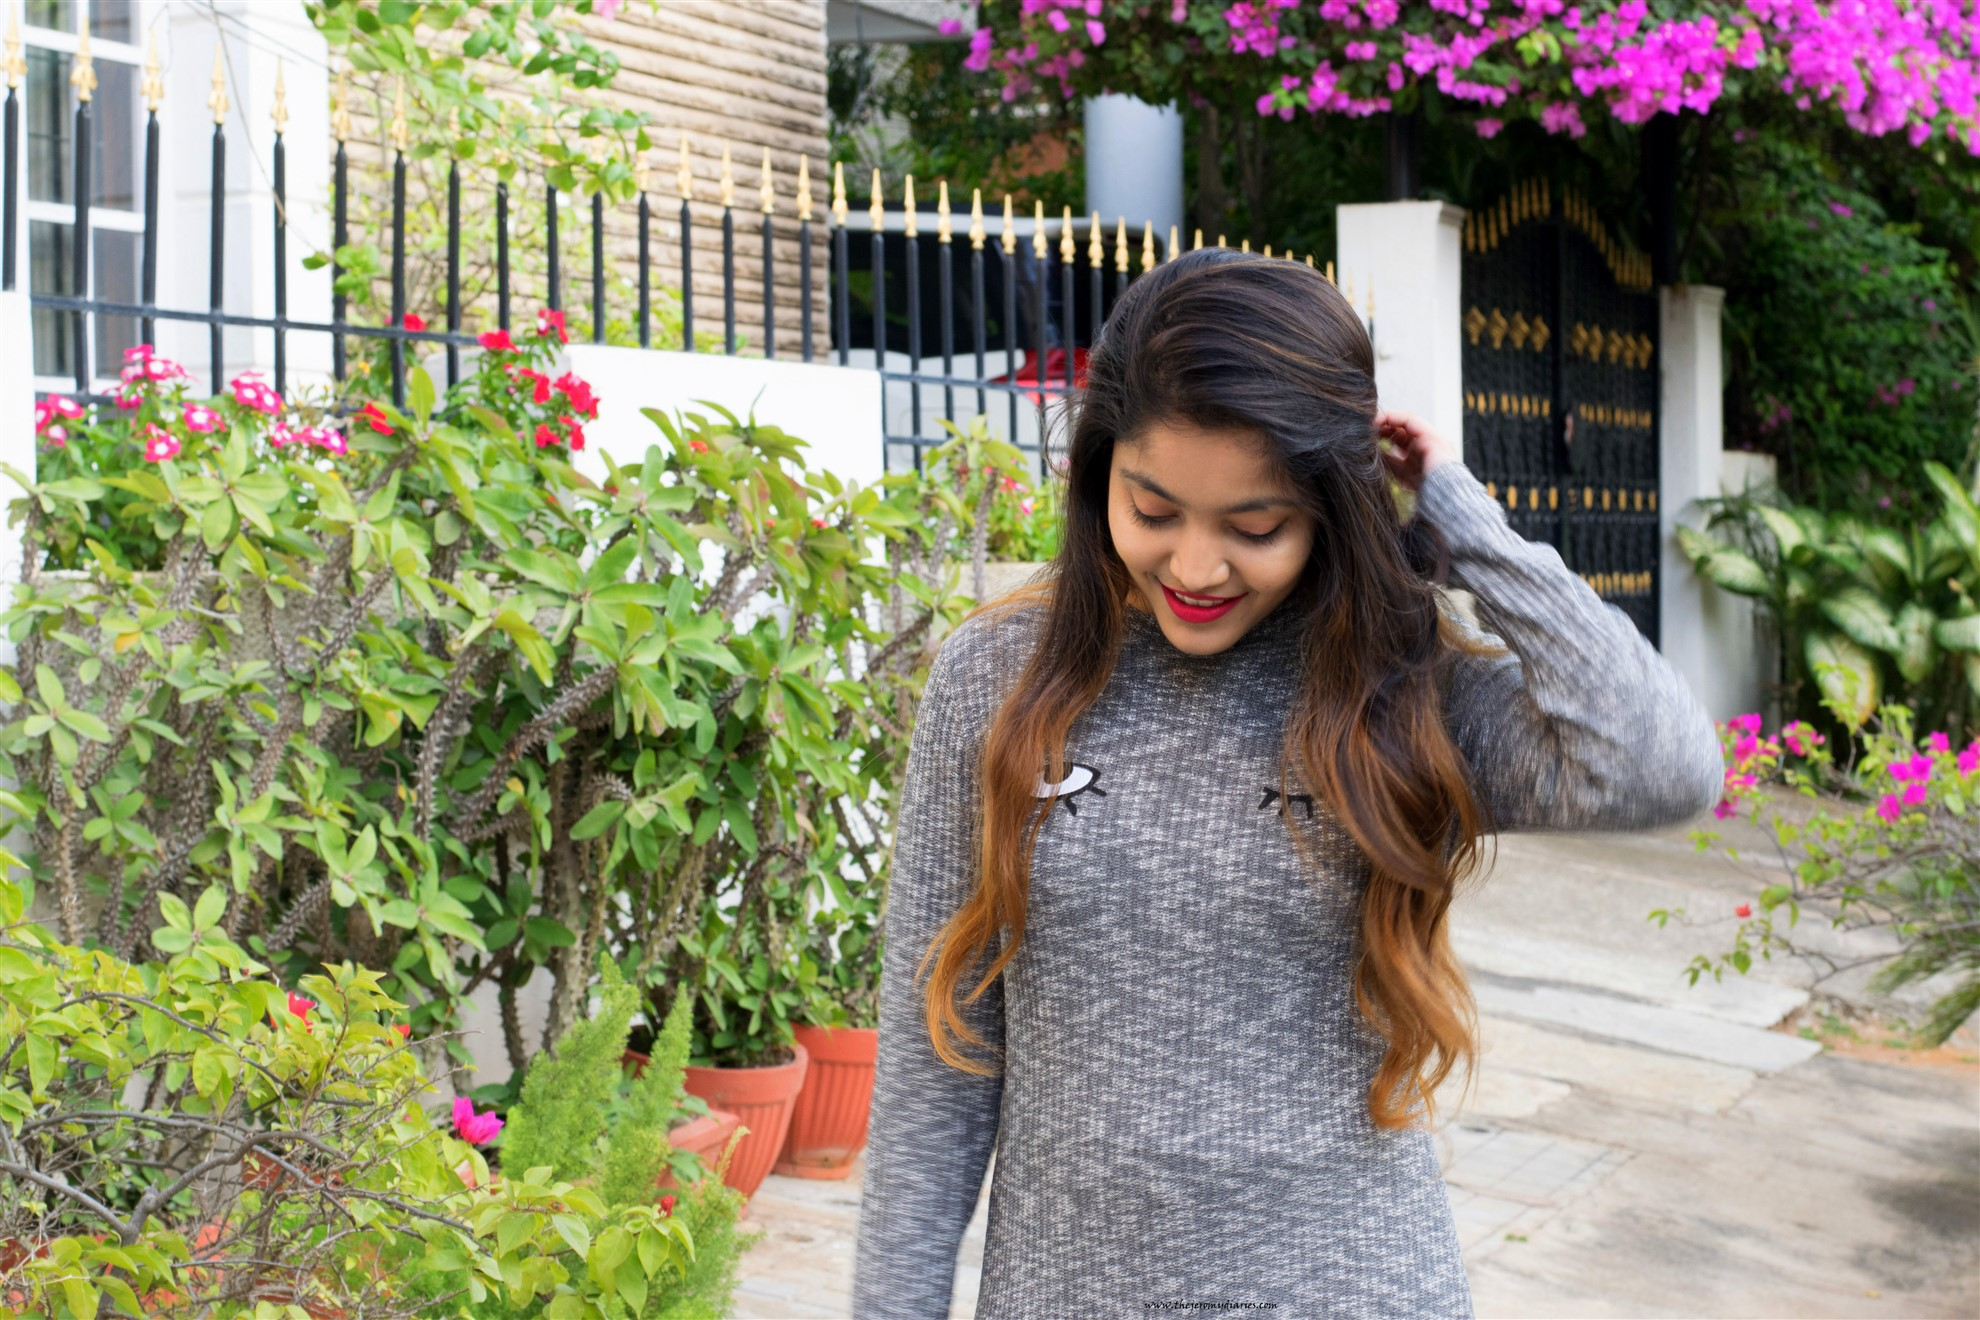 fashion-blogger-princy-mascarenhas-from-the-jeromy-diaries-x-relaince-footprints